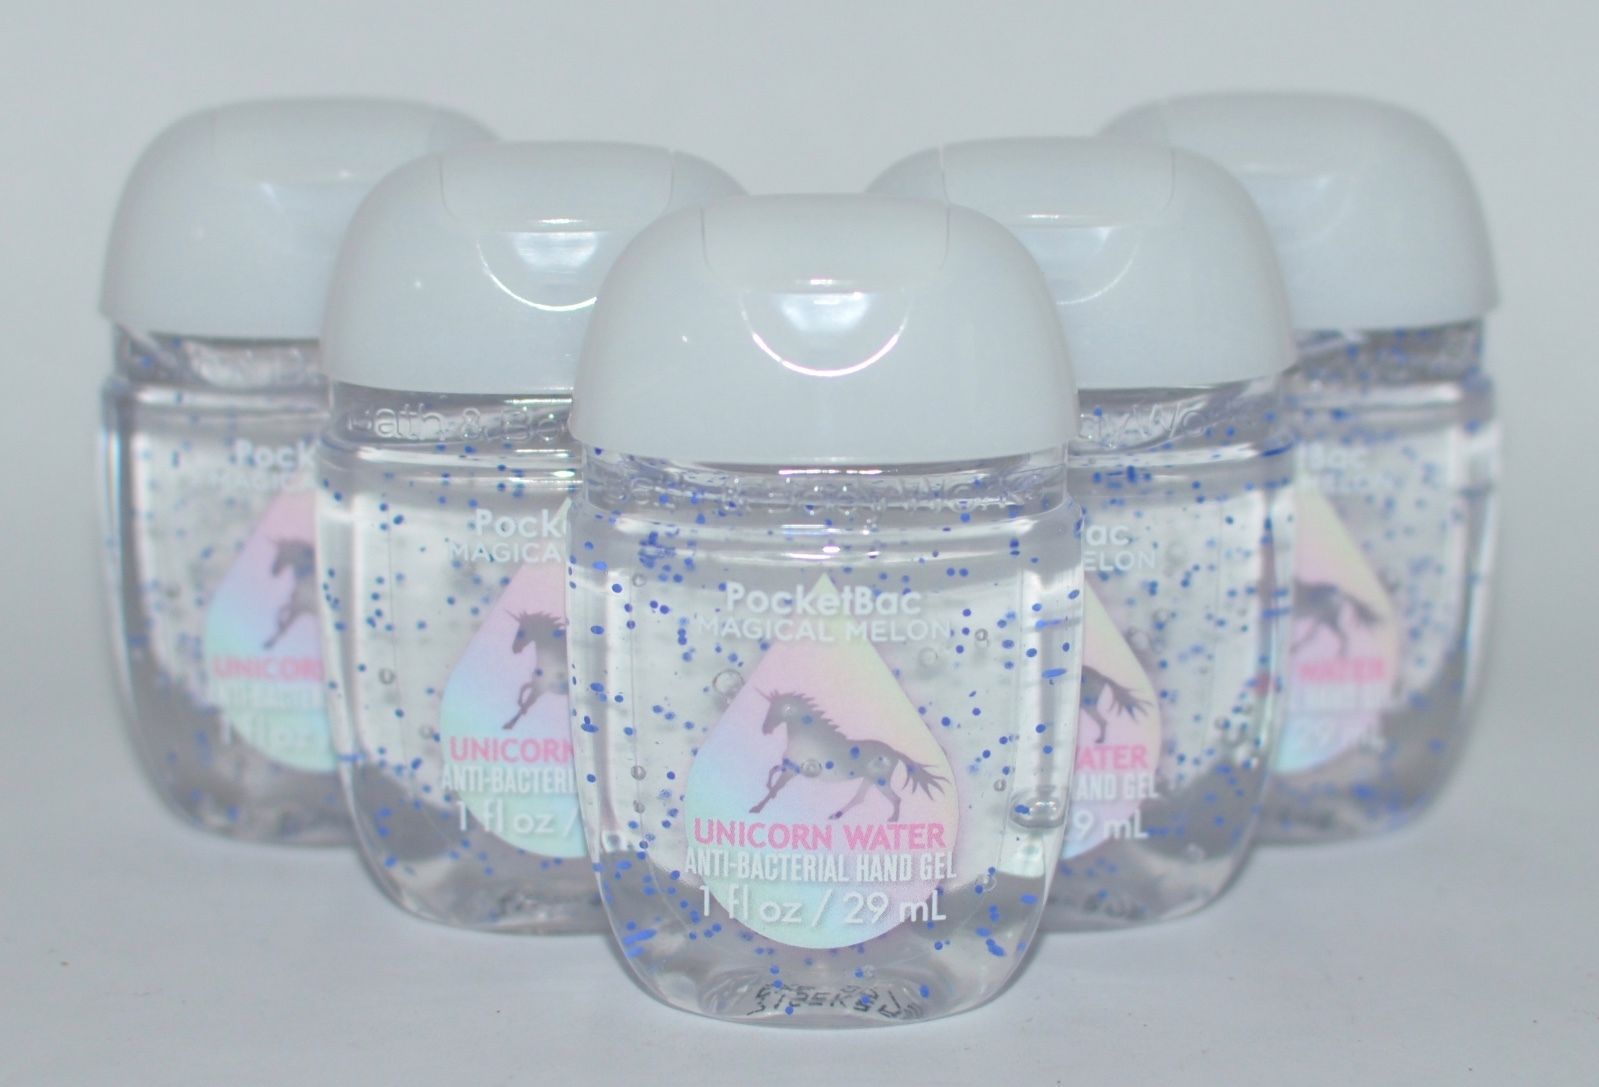 9 99 5 Bath Body Works Unicorn Water Melon Pocketbac Anti Bac